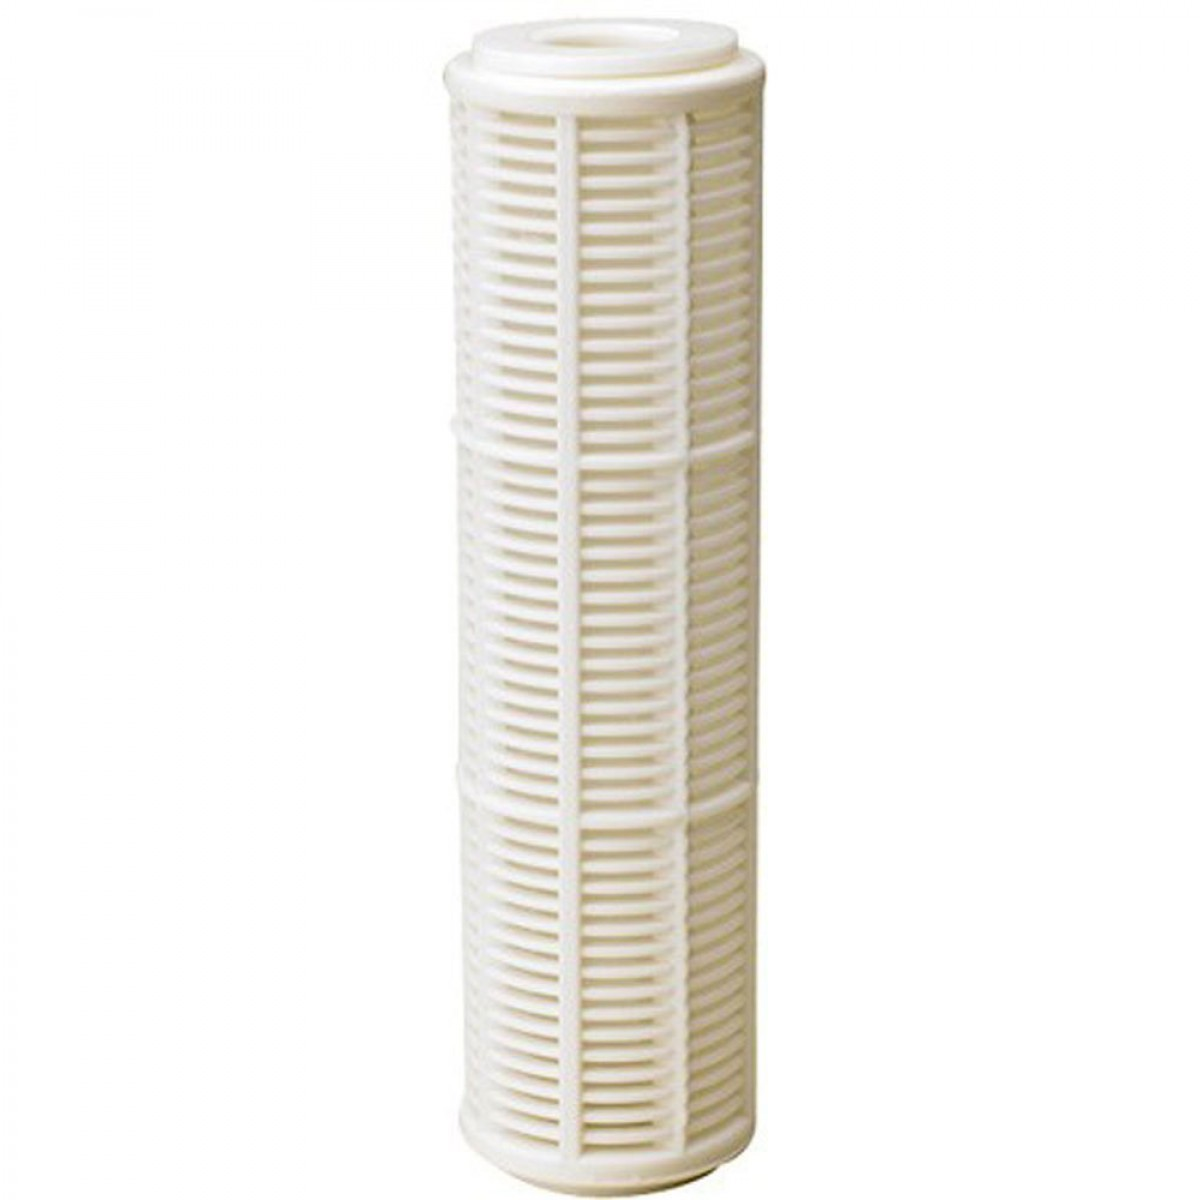 RS19 OmniFilter Water Filter Cartridge DiscountFilterStore.com #51441C